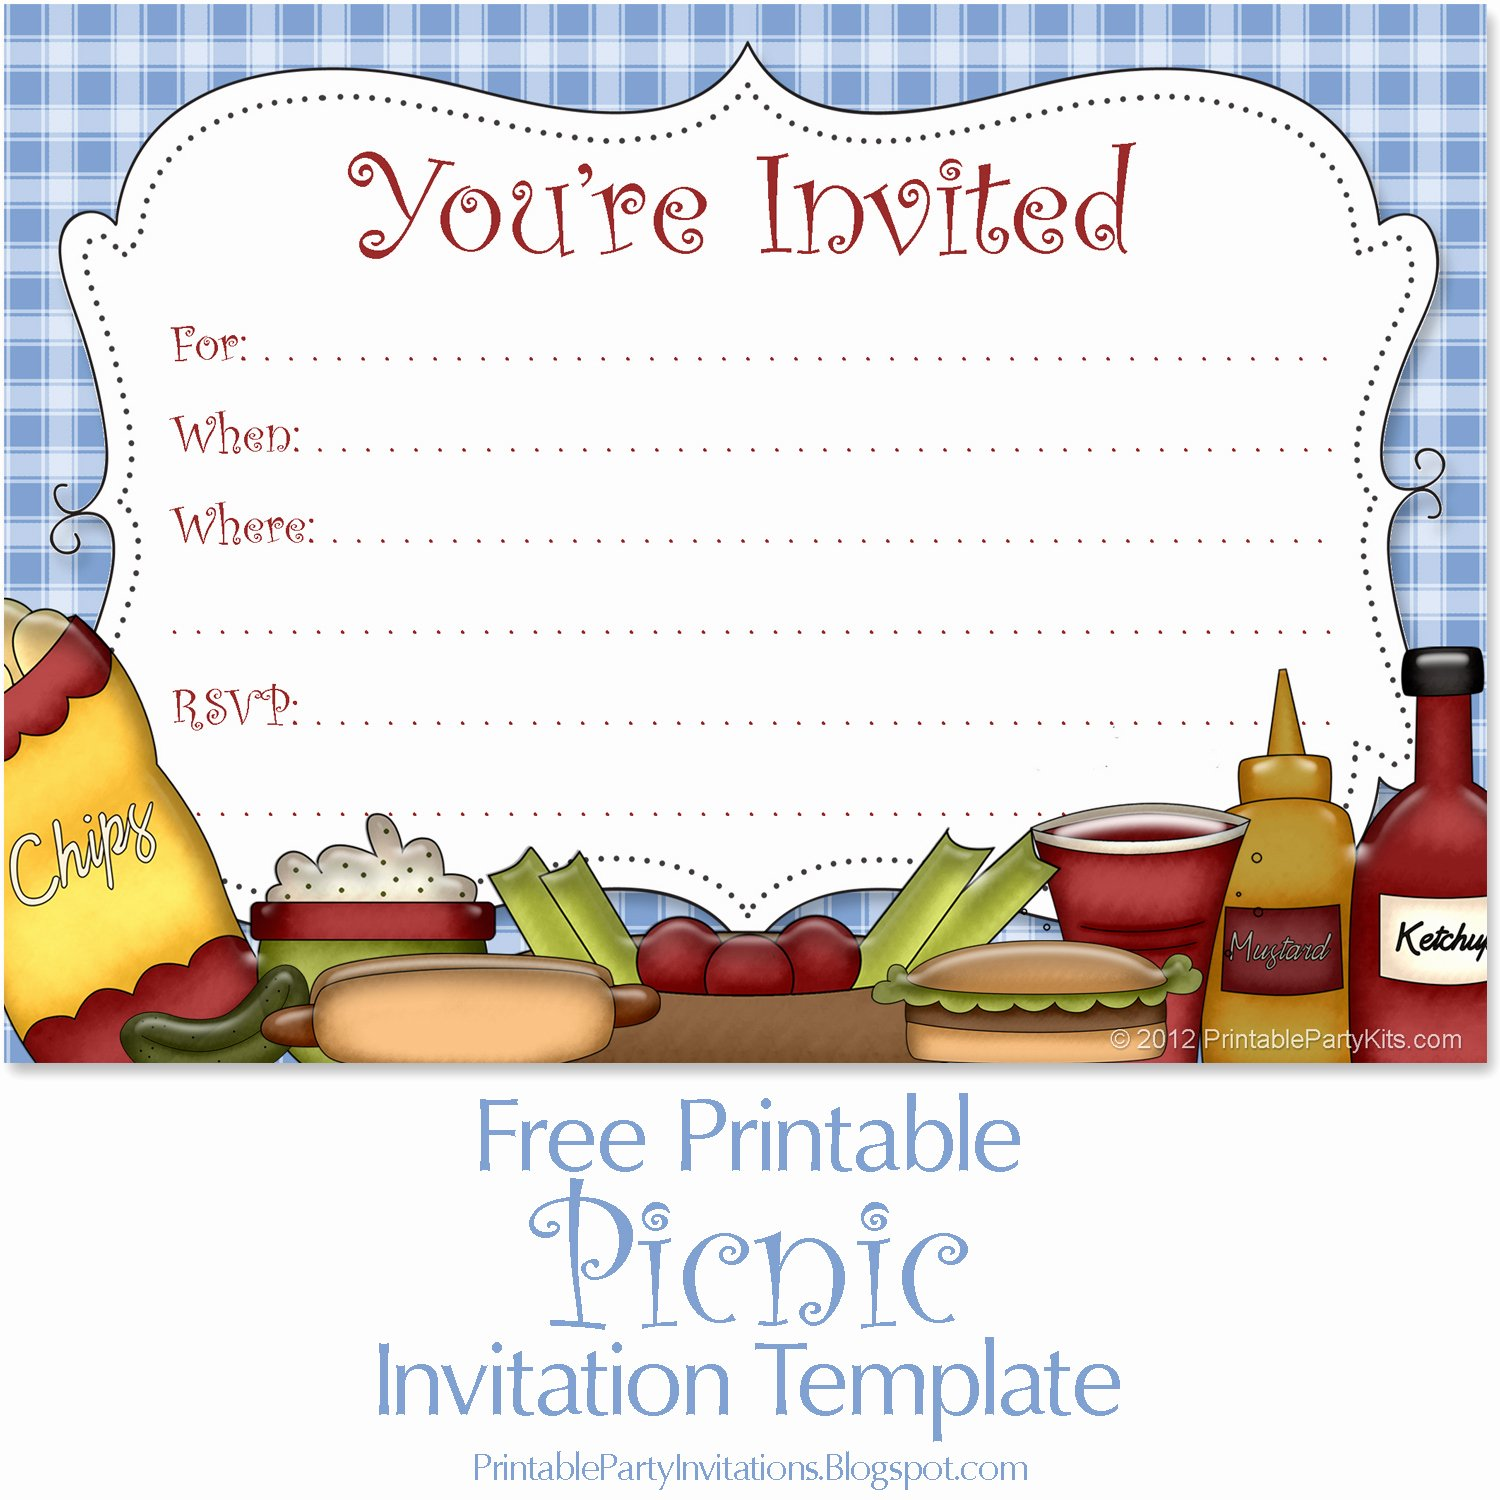 Free Picnic Invitation Template New Free Printable Picnic Announcement Artwork